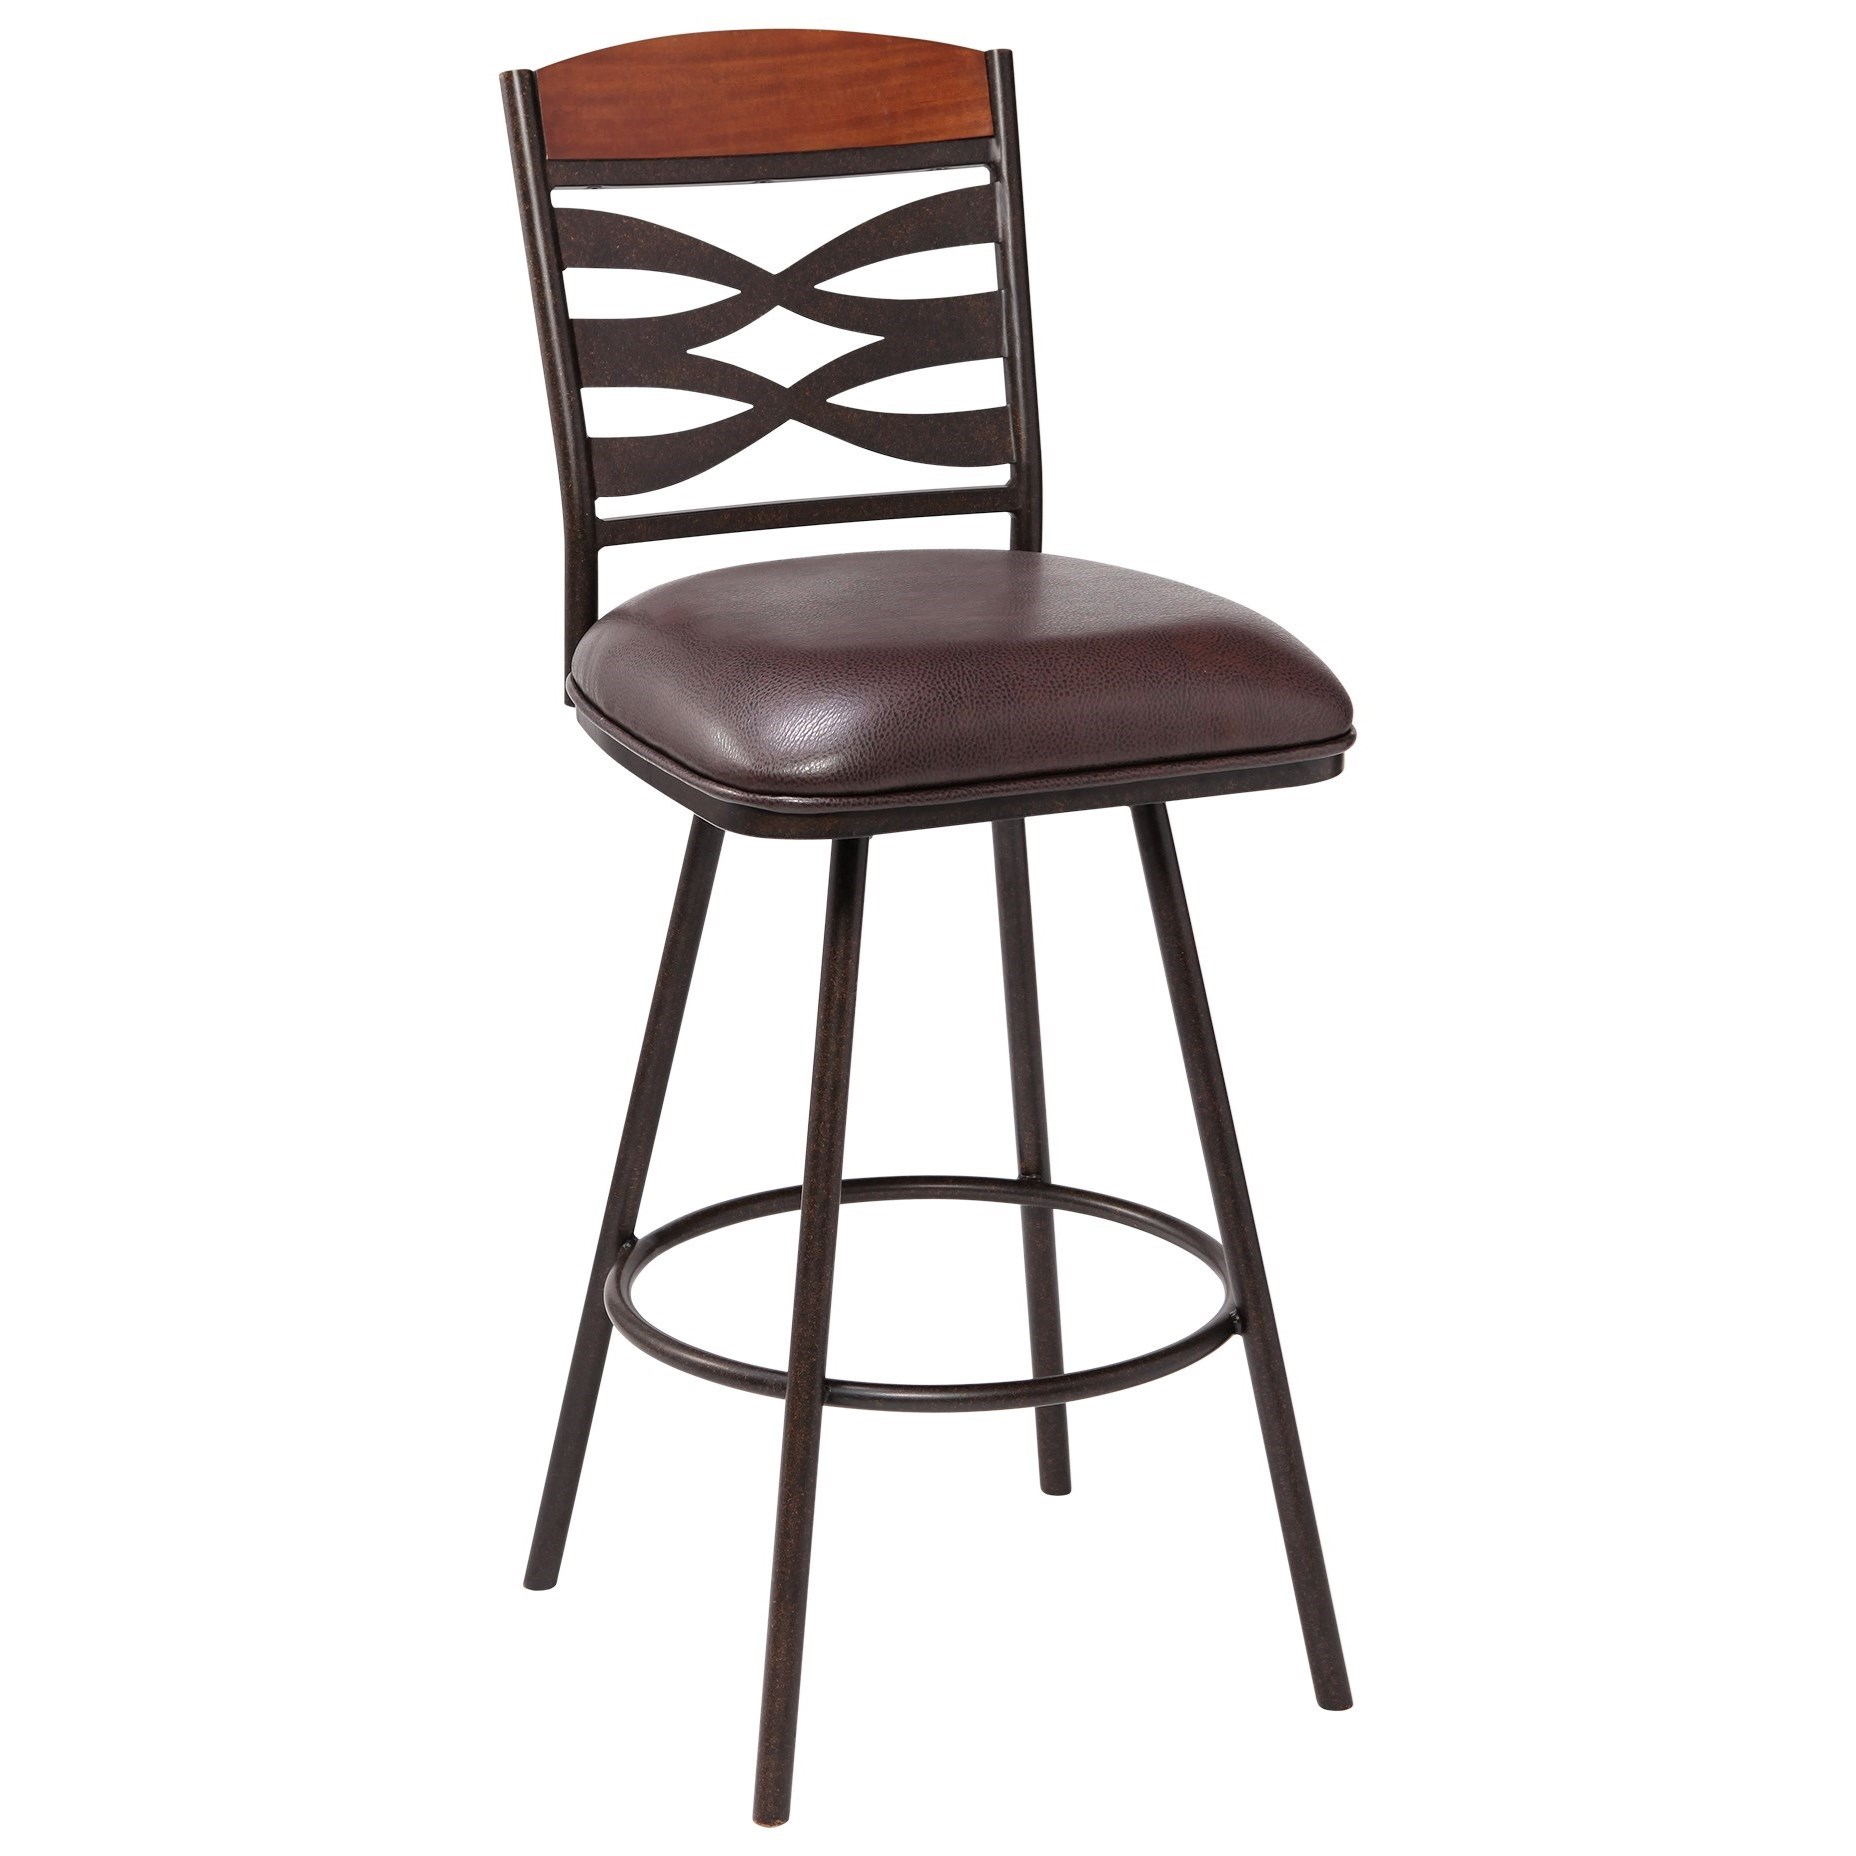 "Arden Contemporary 26"" Counter Height Barstool by Armen Living at Fisher Home Furnishings"